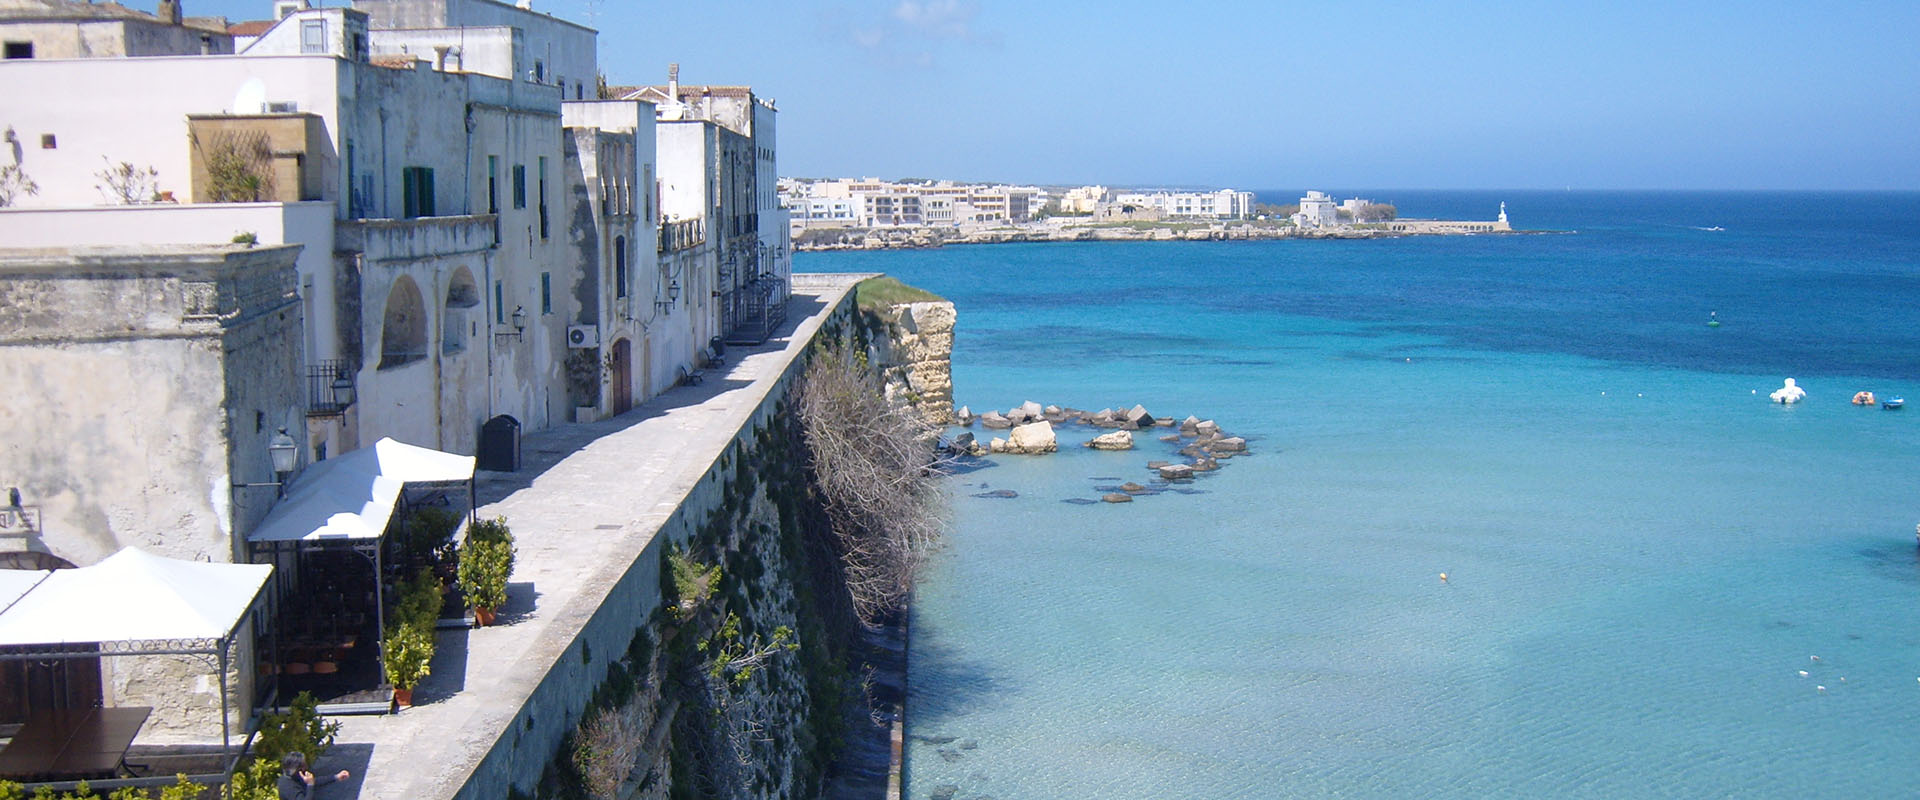 Otranto e Gallipoli